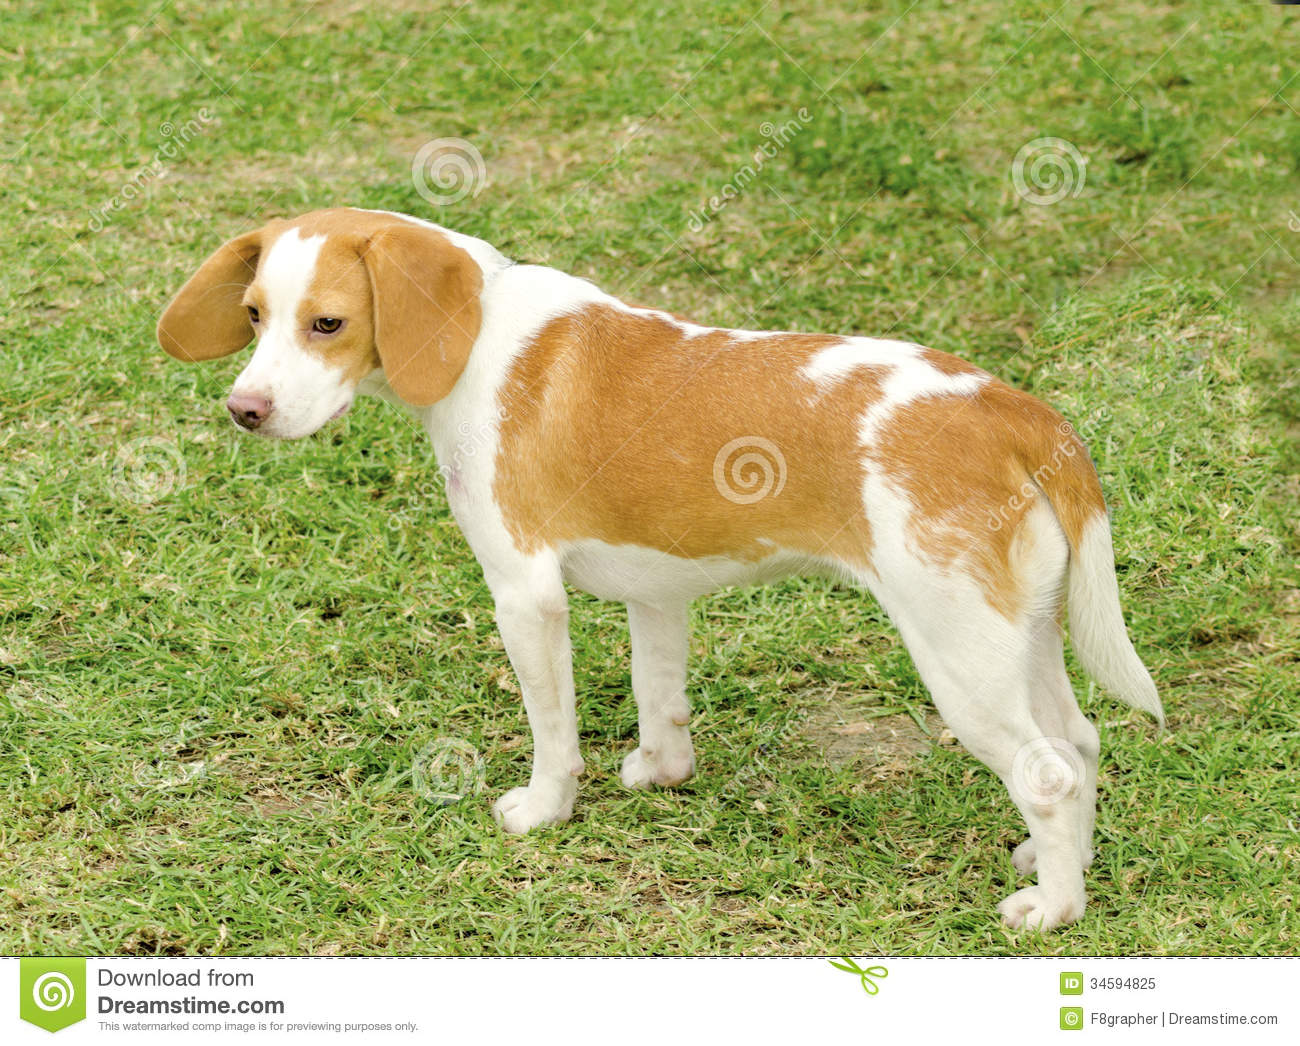 Istrian Shorthaired Hound Dog: Royalty Free Stock Istrian Shorthaired Hound Young Beautiful White Orange Puppy Dog Standing Lawn Short Haired Breed